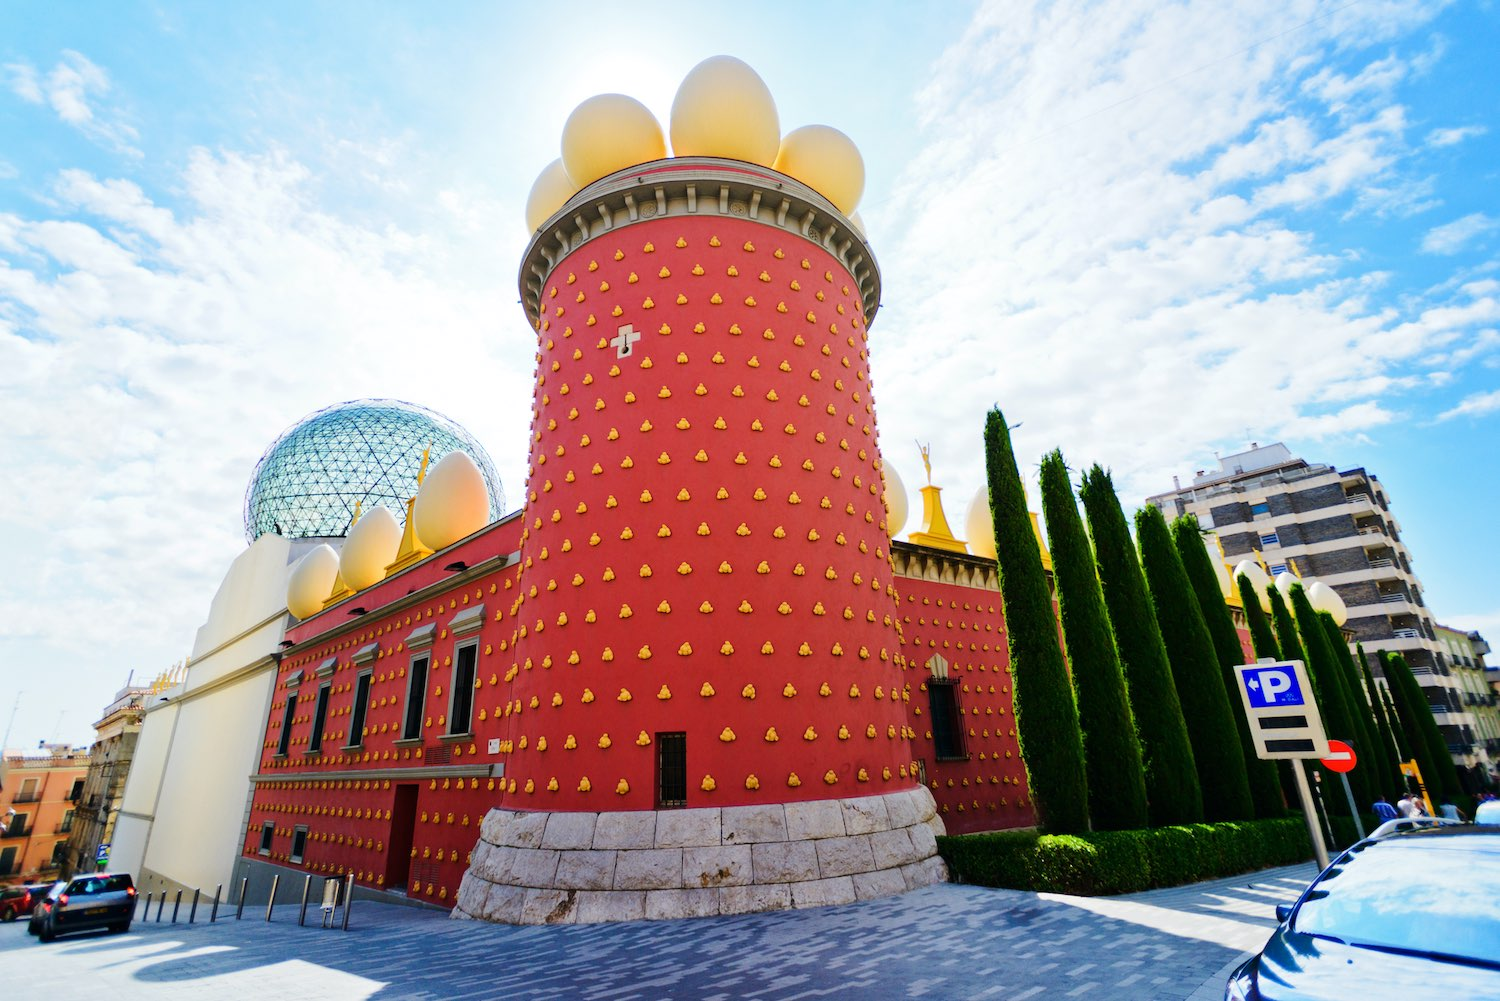 Salvador Dali museum in Figueras, Spain - Day Trip from Barcelona